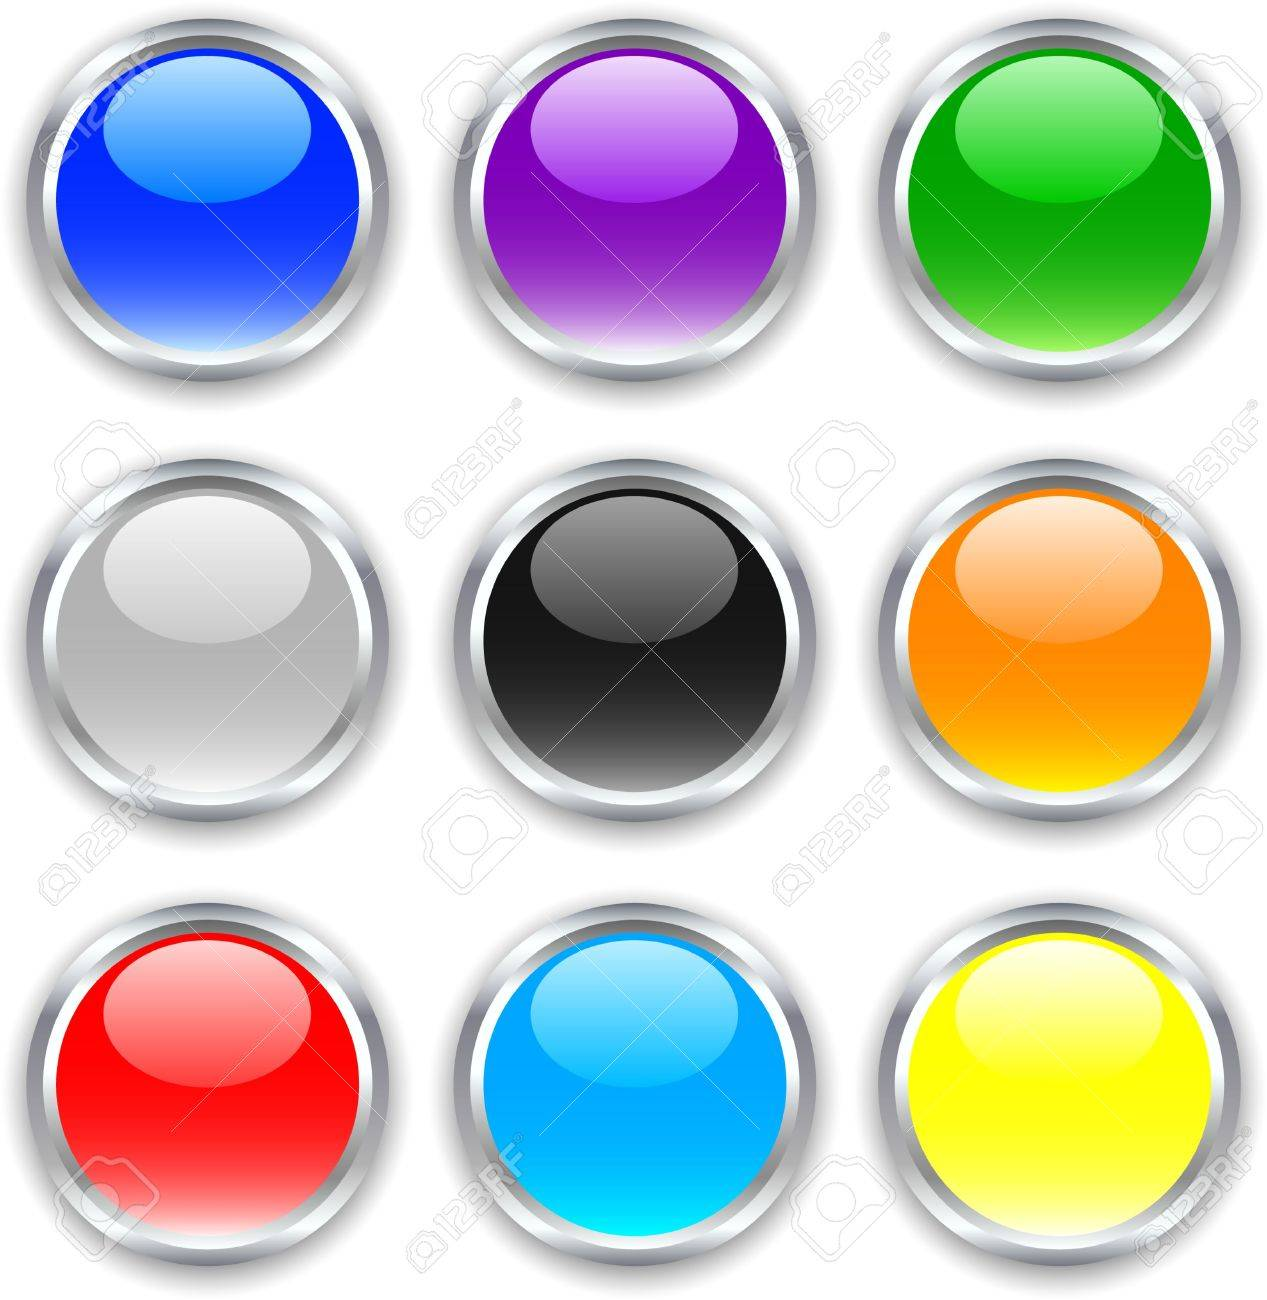 Beautiful buttons with shadows. Vector illustration. Stock Vector - 3398651